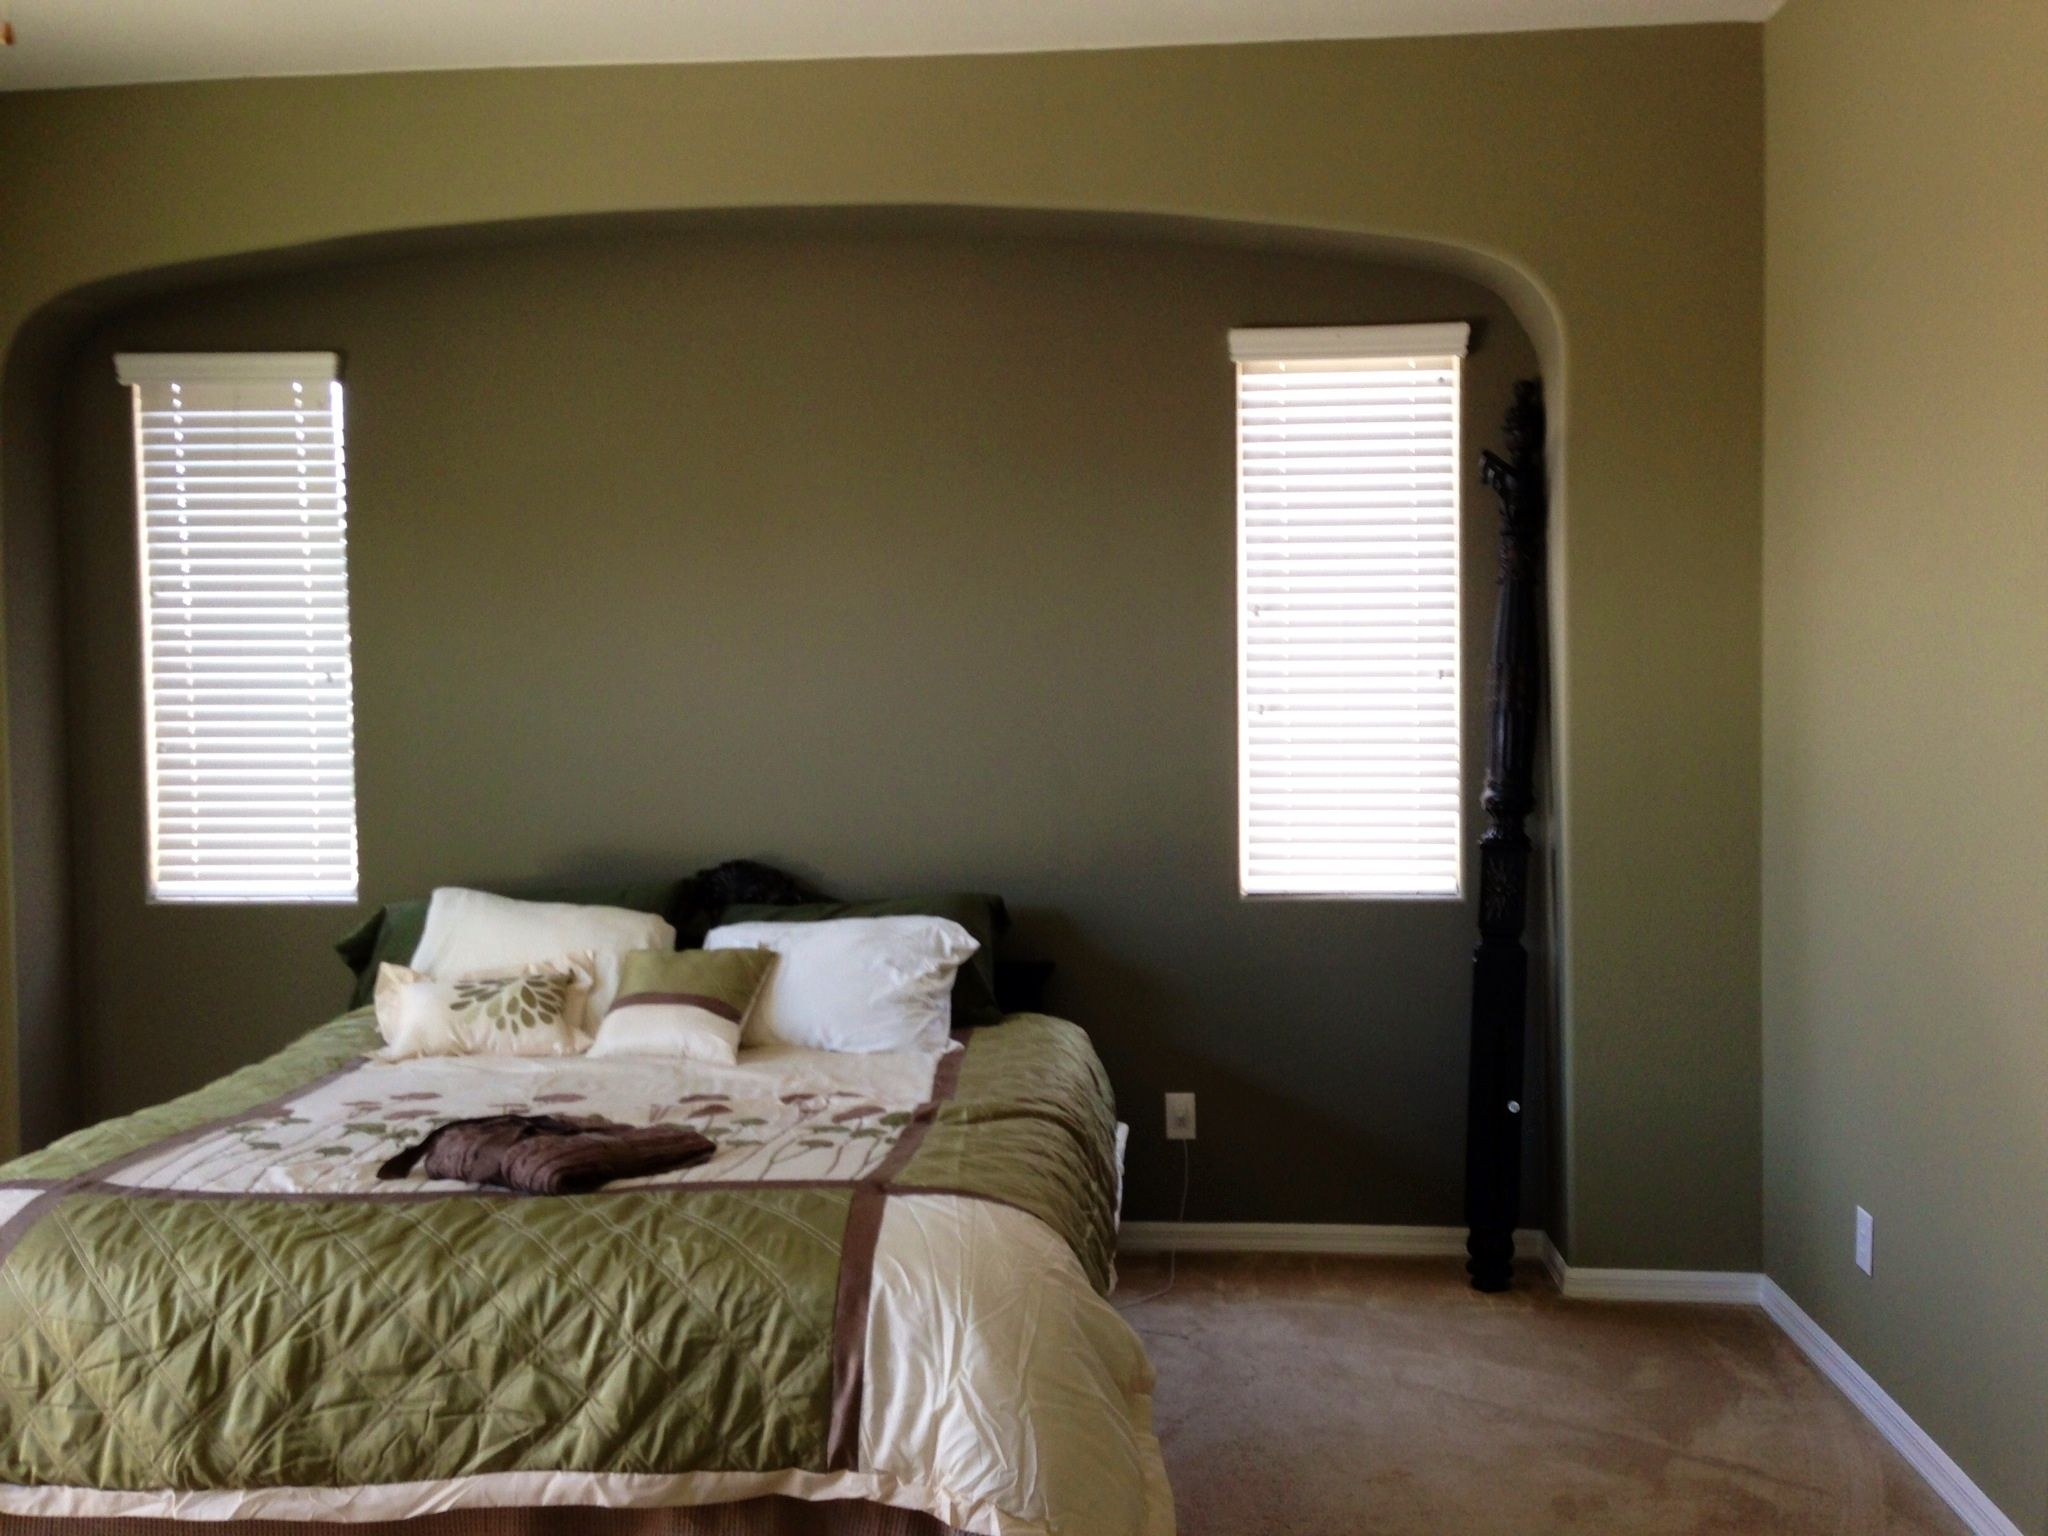 Sherwin Williams Herbal Wash With Restoration Color In Inset. Restoration Paint ColorsThe HouseBedroom IdeasWalls